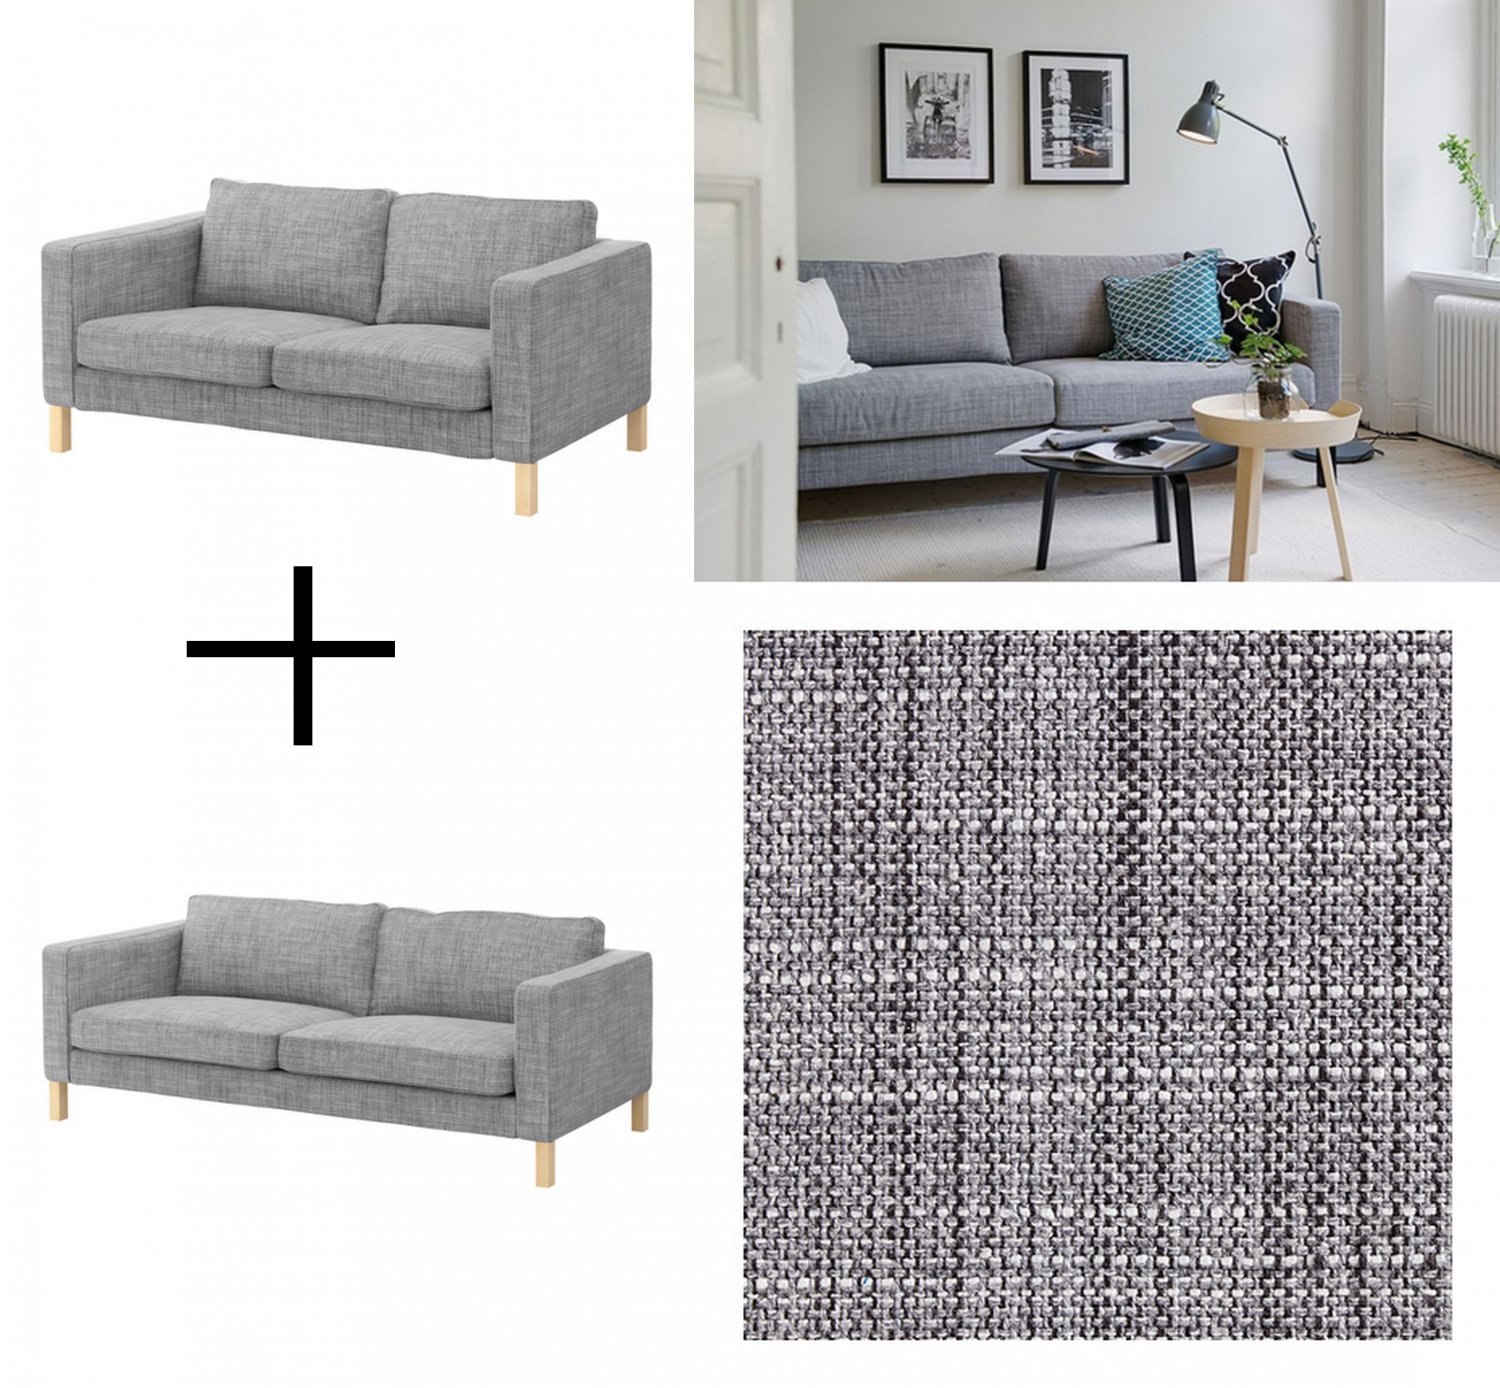 loveseat sage sleeper products grey furniture sq jennifer slipcover darcy sw sofa